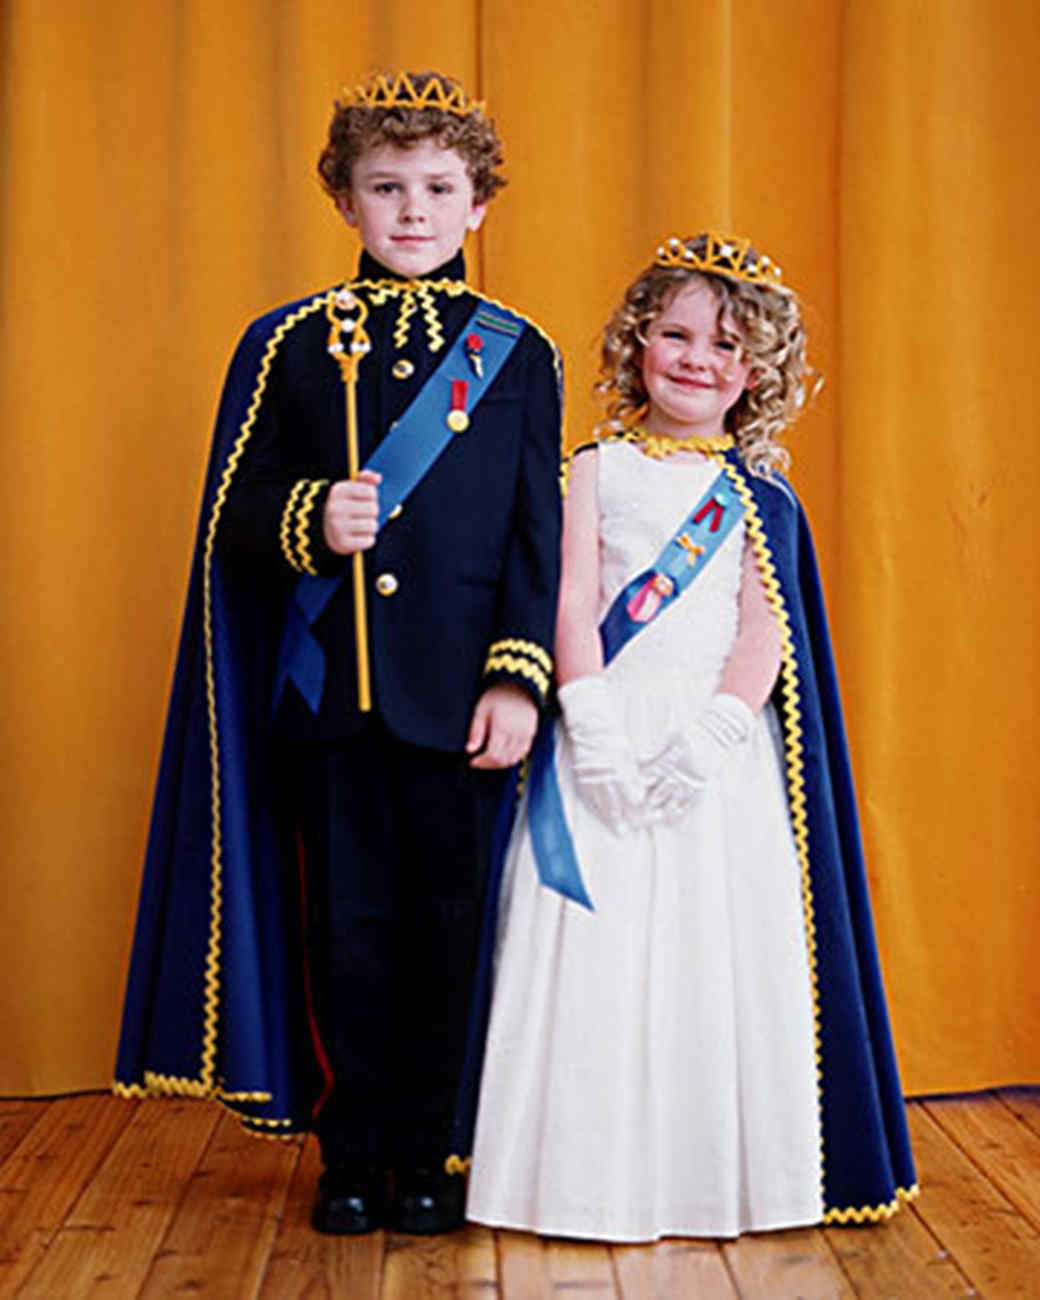 His And Her Royal Highness Costumes Martha Stewart